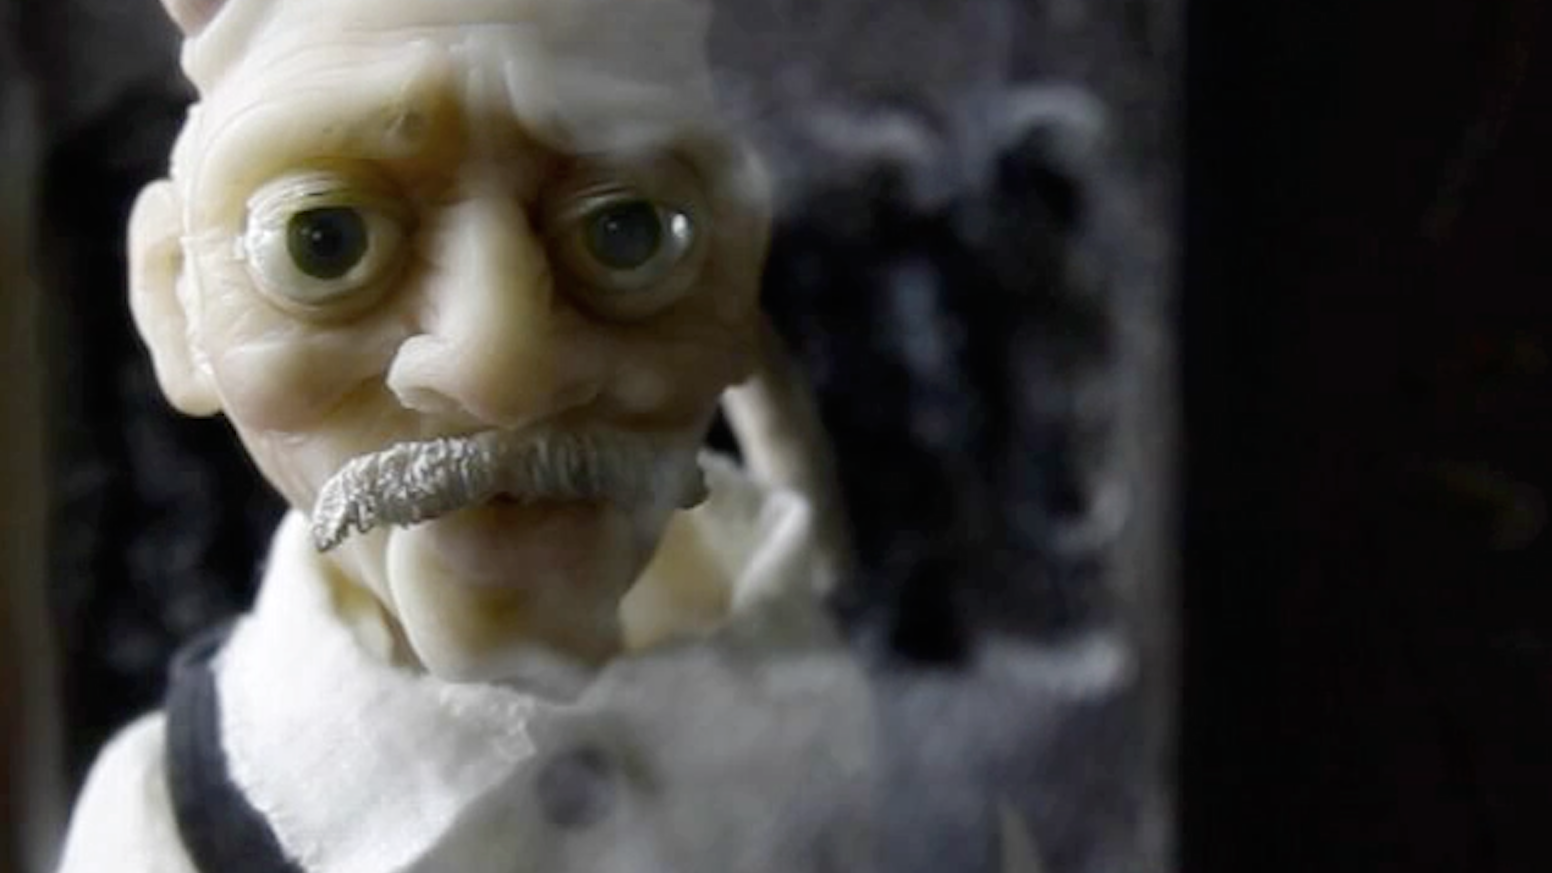 A claymation short film about an unusual man, born in the likeness of Satan, who spends his life seeking connection.